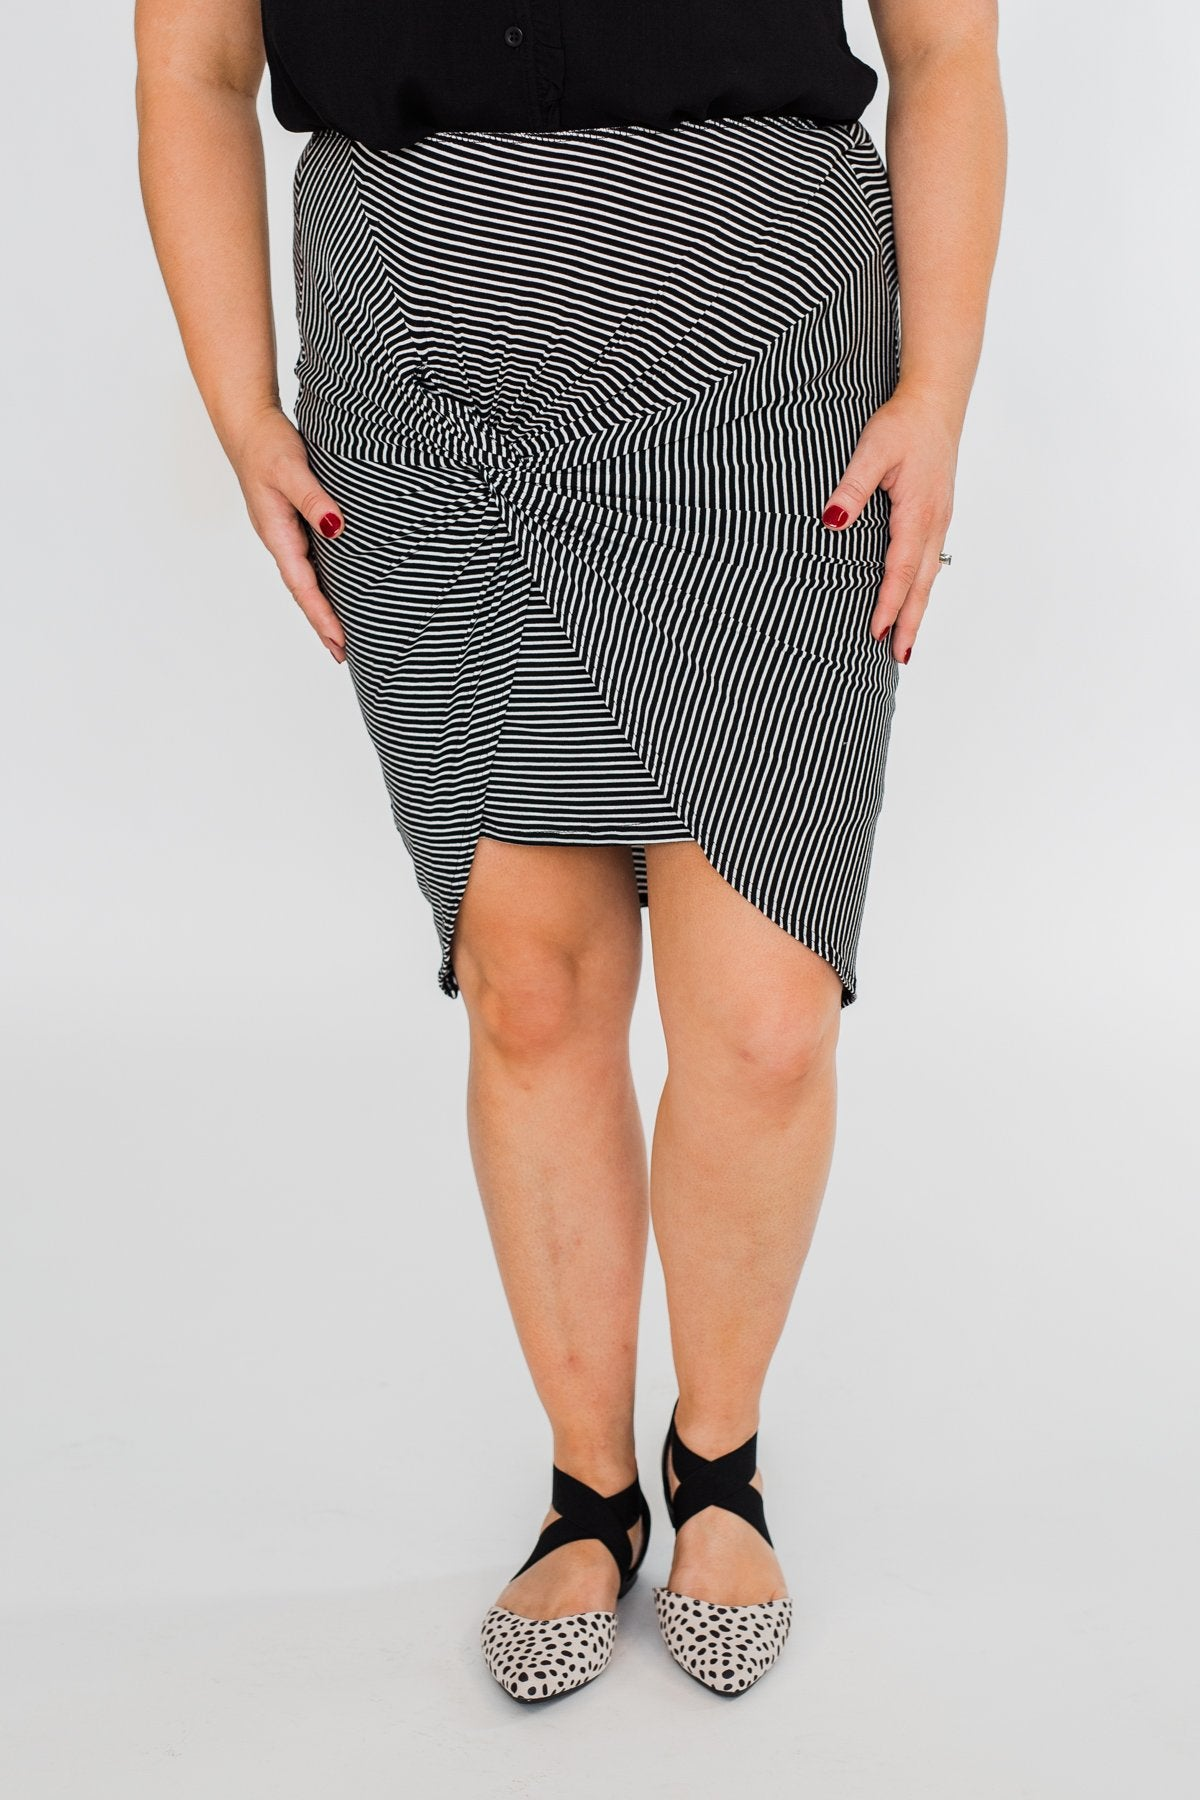 Double Layer Striped Skirt- Black & White